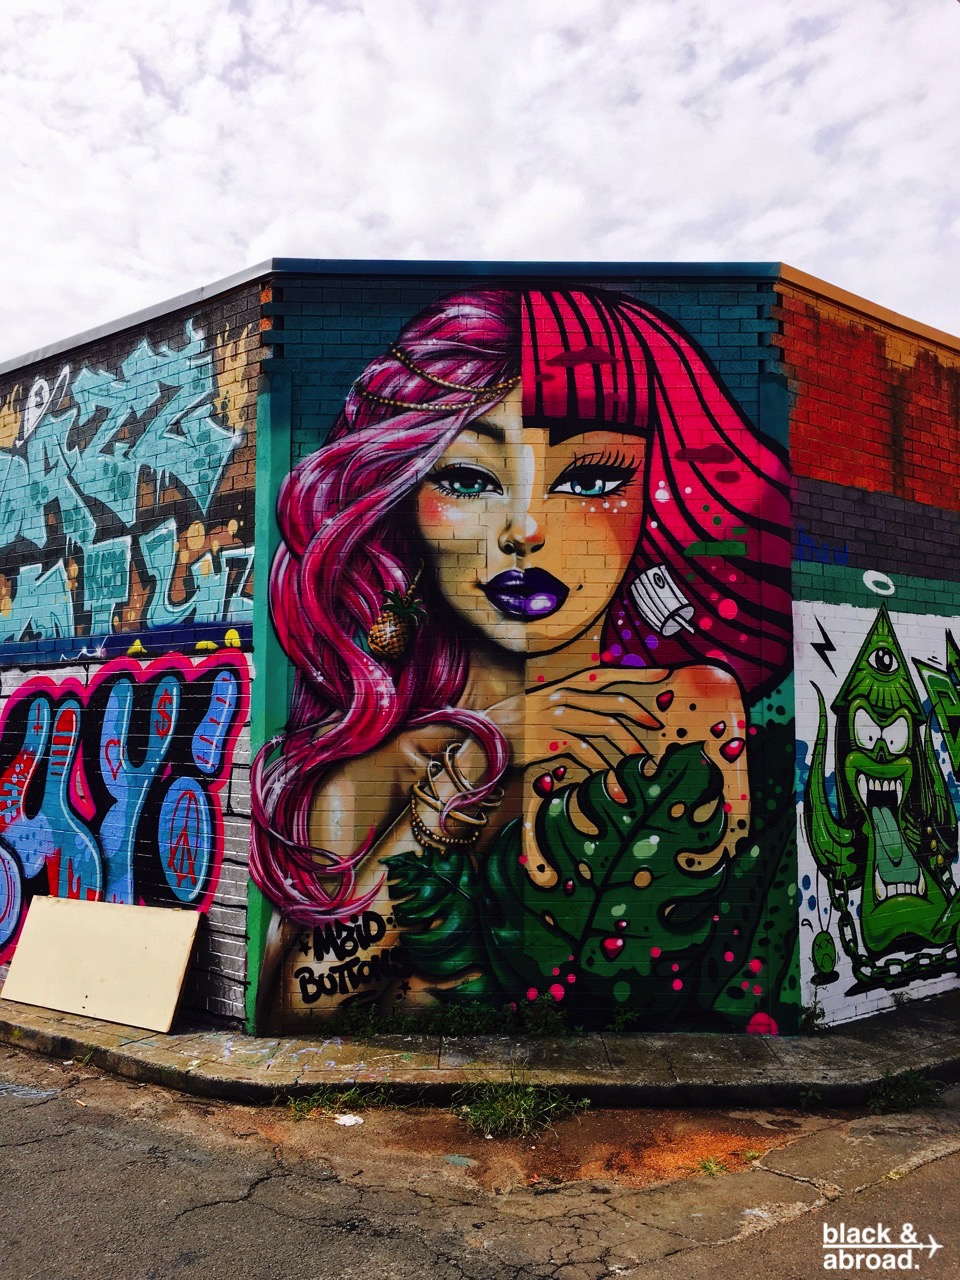 The Man Defined x Black & Abroad: Newtown Australia's Street Art